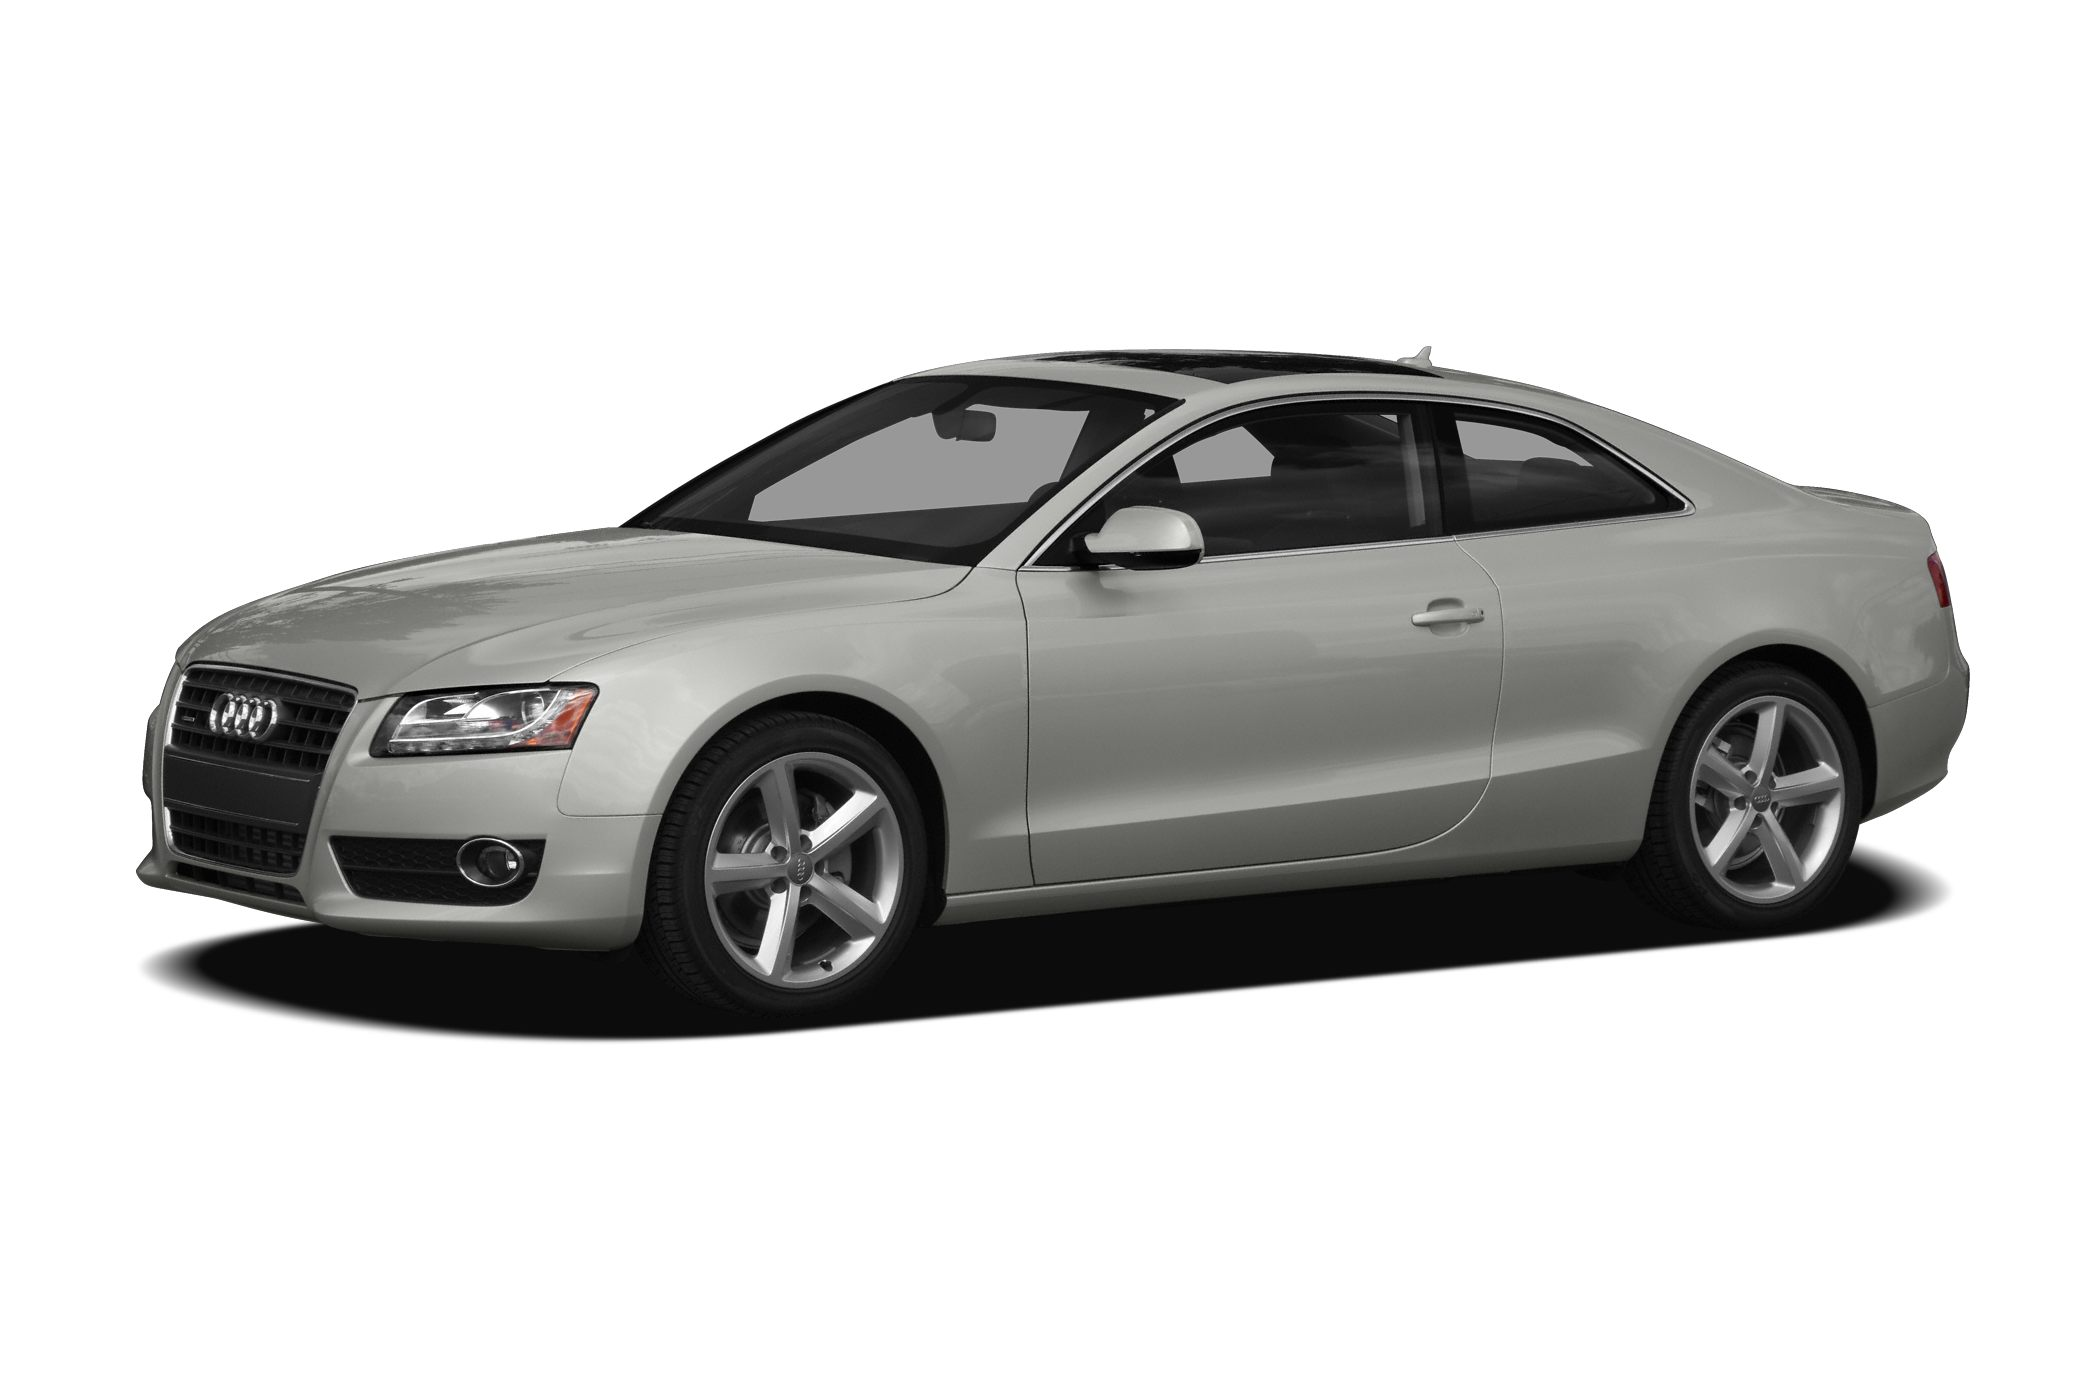 2011 Audi A5 2.0T Premium Coupe for sale in Lodi for $19,977 with 63,905 miles.